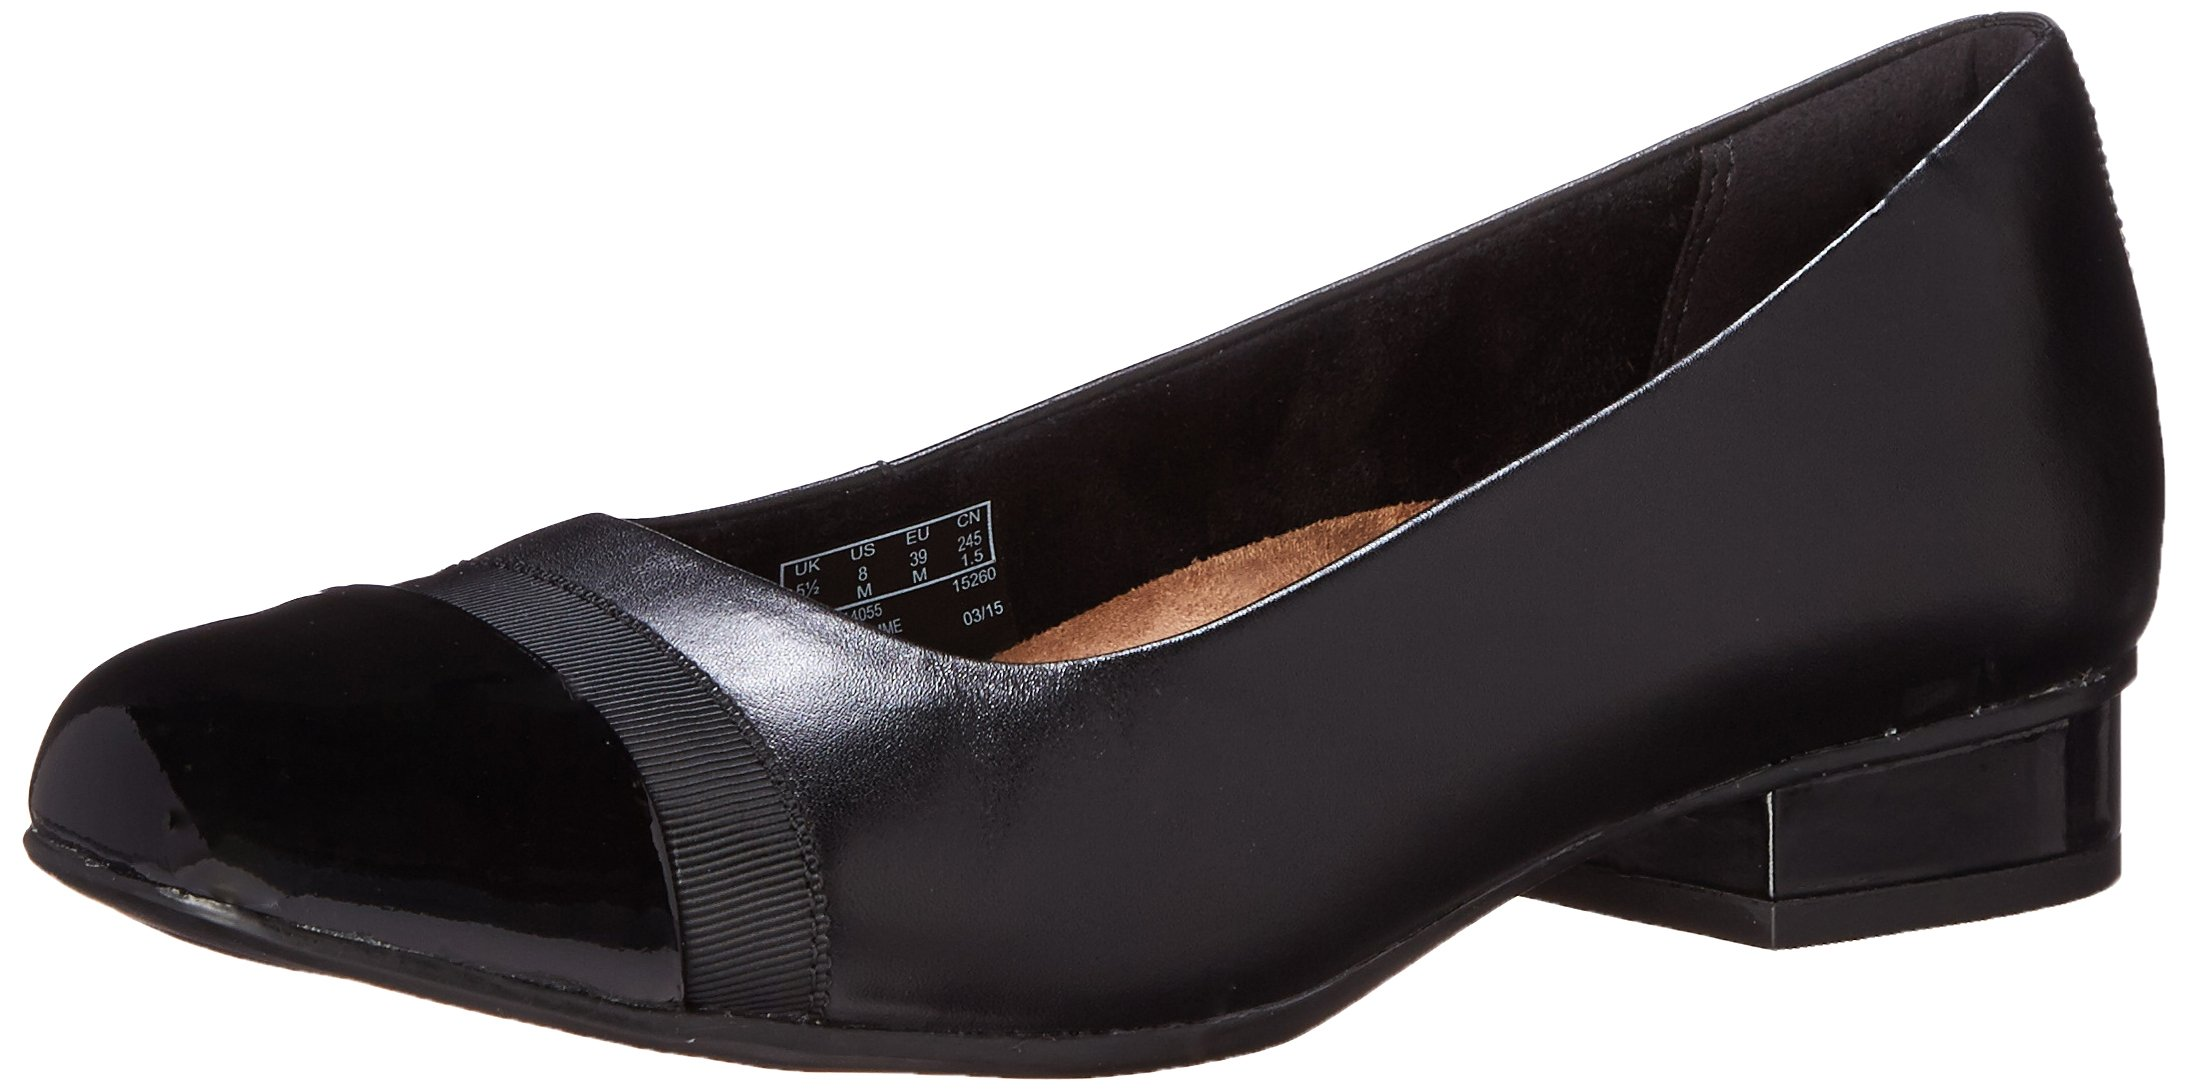 Clarks Women's Keesha Rosa Shoe, black leather, 8 Wide US